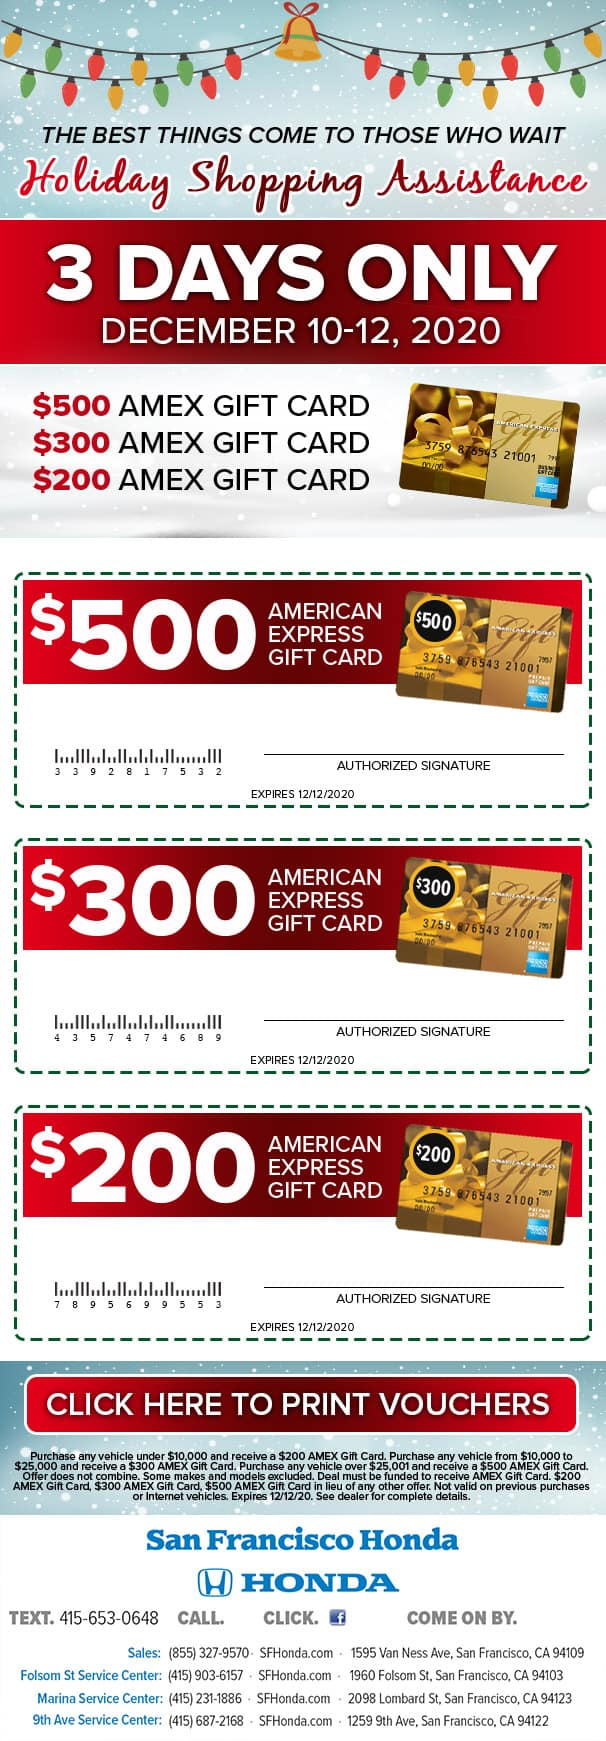 Holiday Shopping Assistance - 3 Days Only